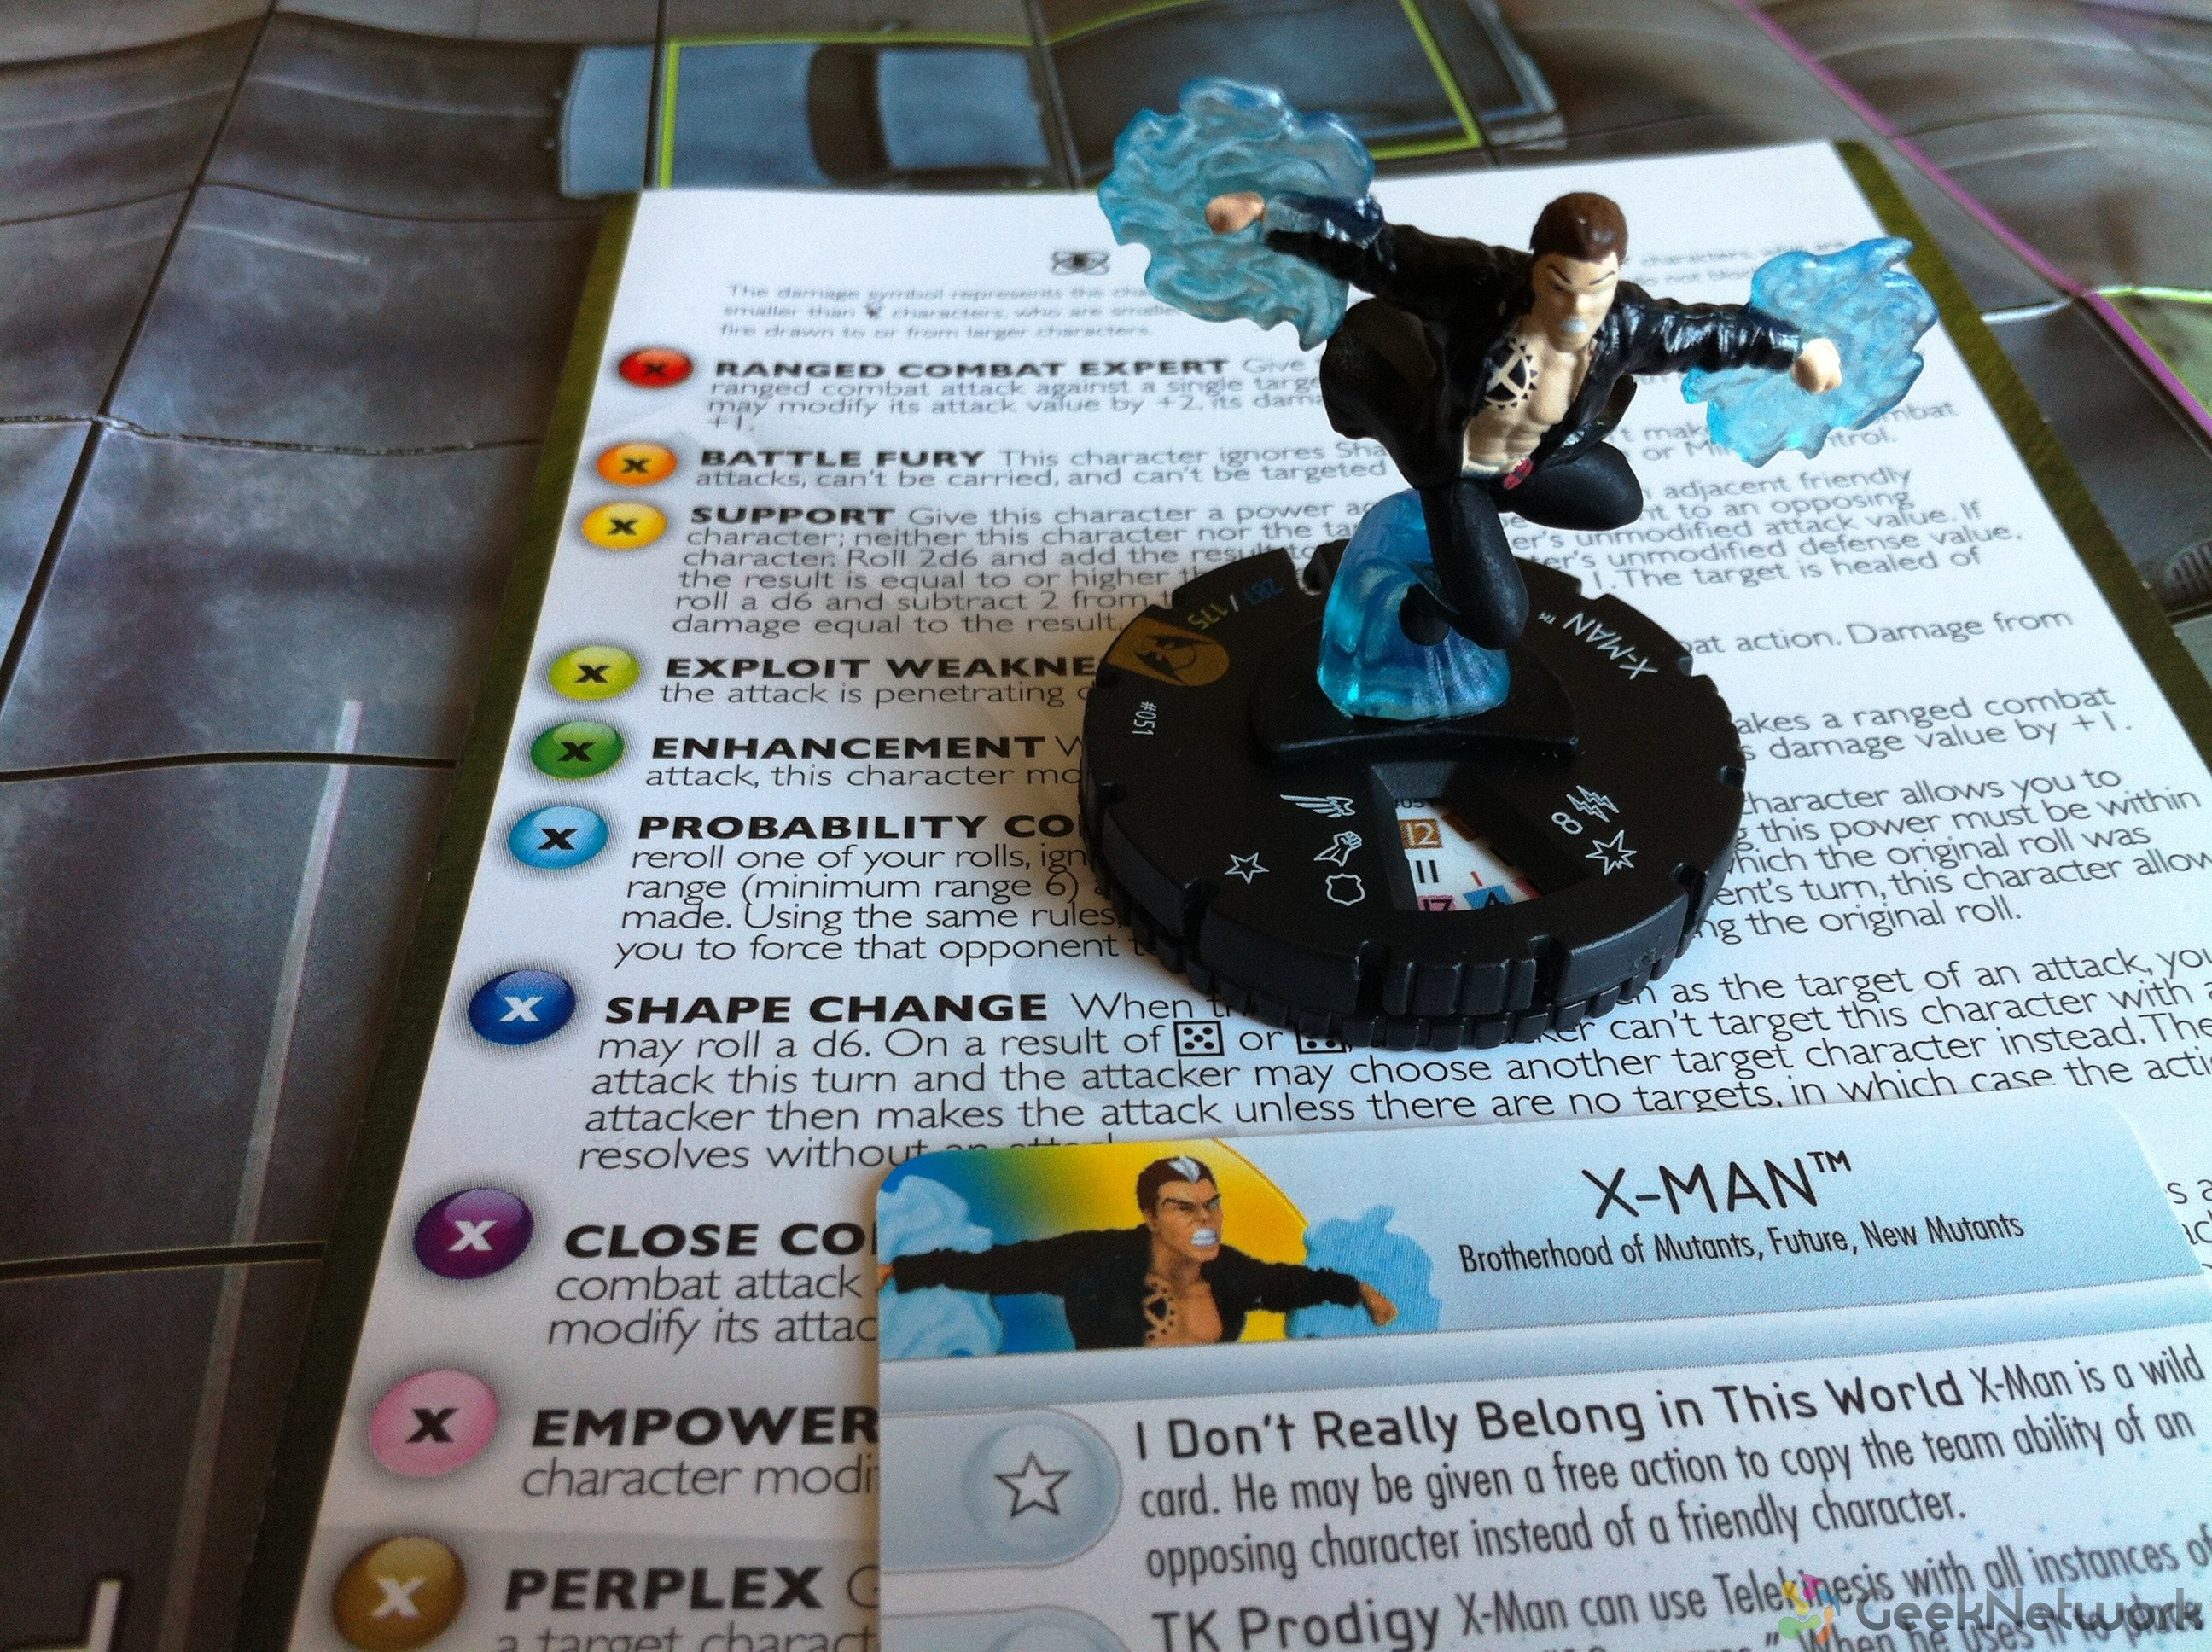 Heroclix: pros and cons